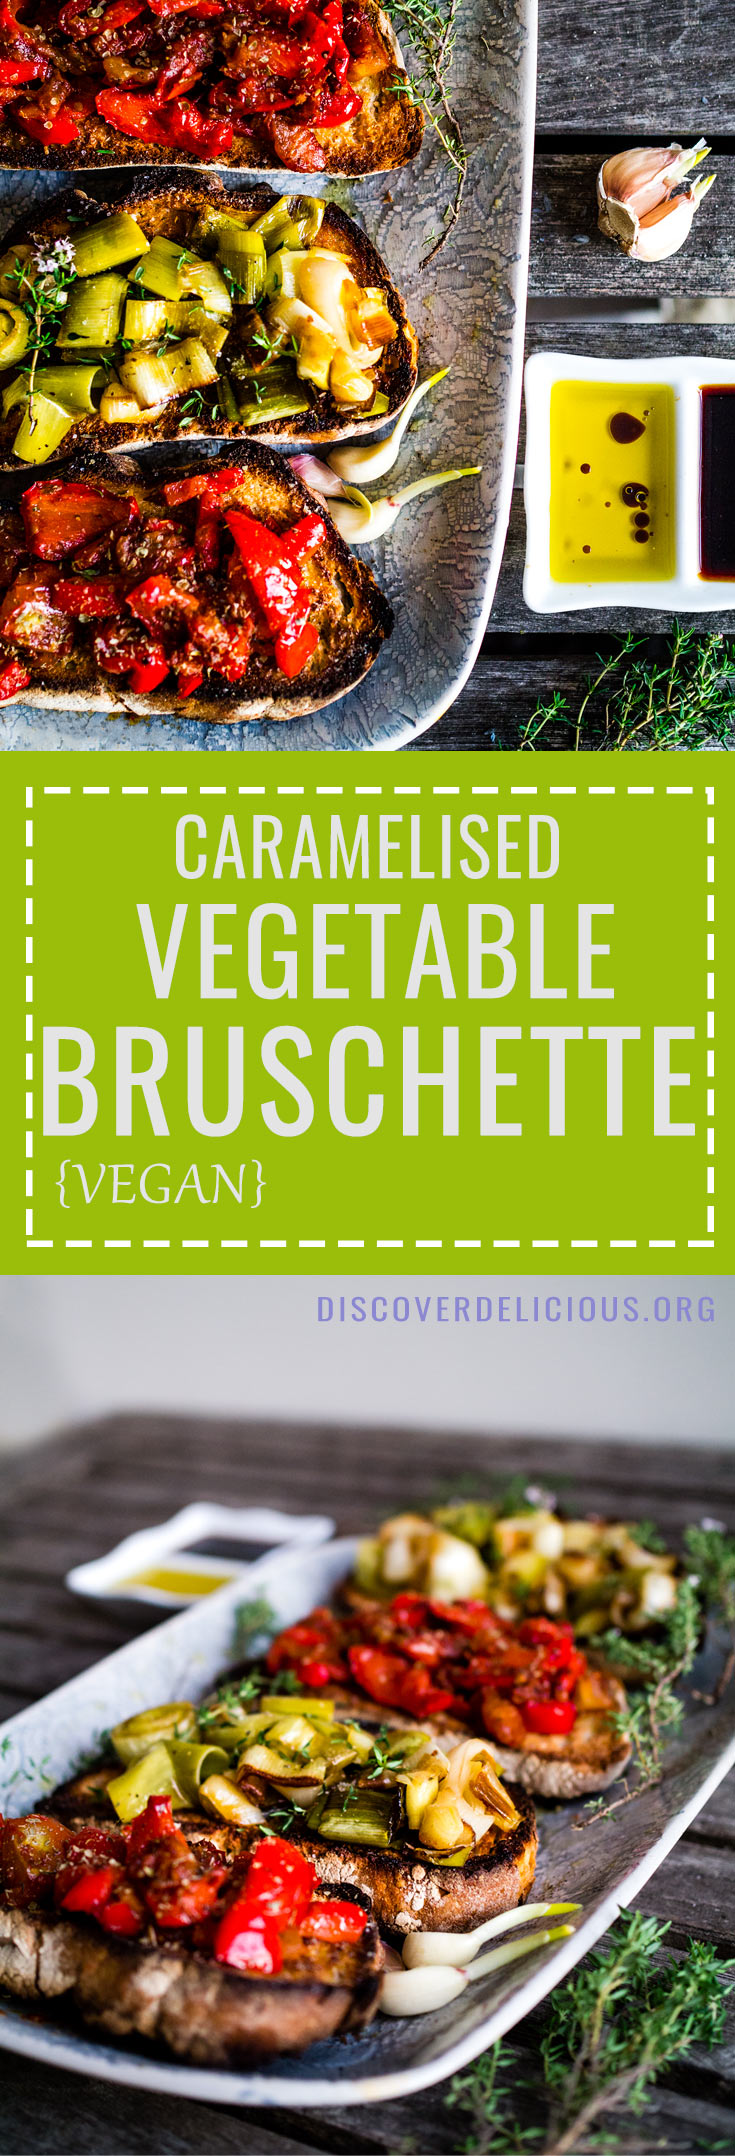 Crunchy & delicious vegetable bruschetta w/ caramelised leeks and sauteed tomatoes. Perfect for a starter or summer main! 100% vegan, too | Discover Delicious | www.discoverdelicious.org | Vegan bruschette #toast #toasts #bread #vegetables #recipe #recipes #summer #meal